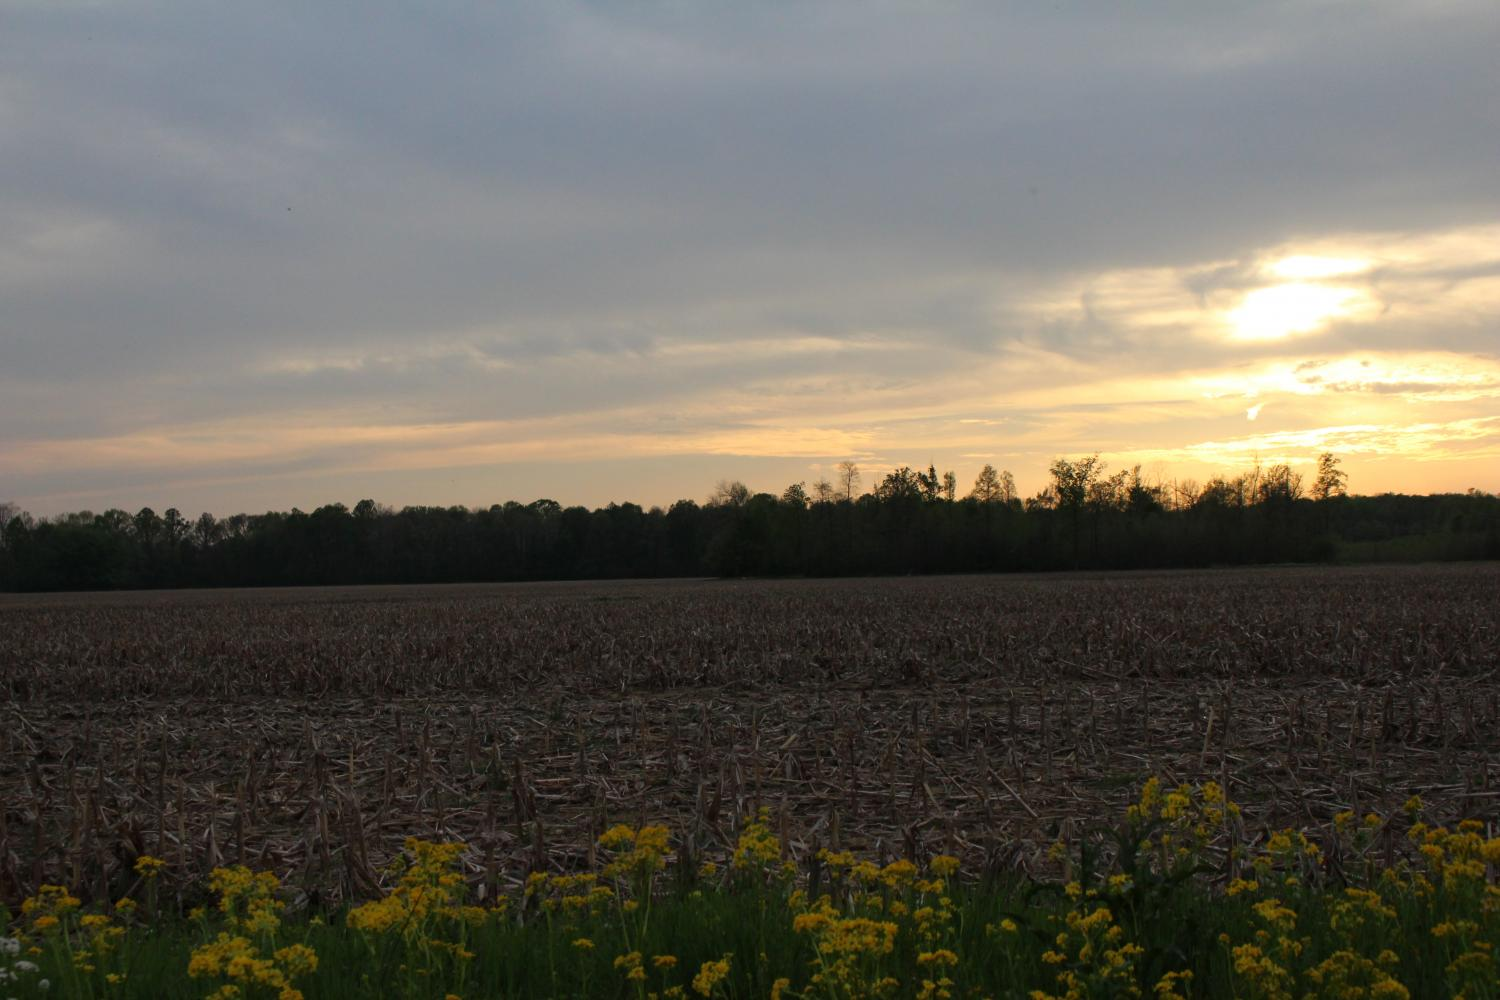 Anna Hall, agriculture education junior at Purdue University, said Southern Indiana farmers who sell locally typically have smaller farms with only a few acres of land, such as the one pictured, located in Scottsburg, Indiana.